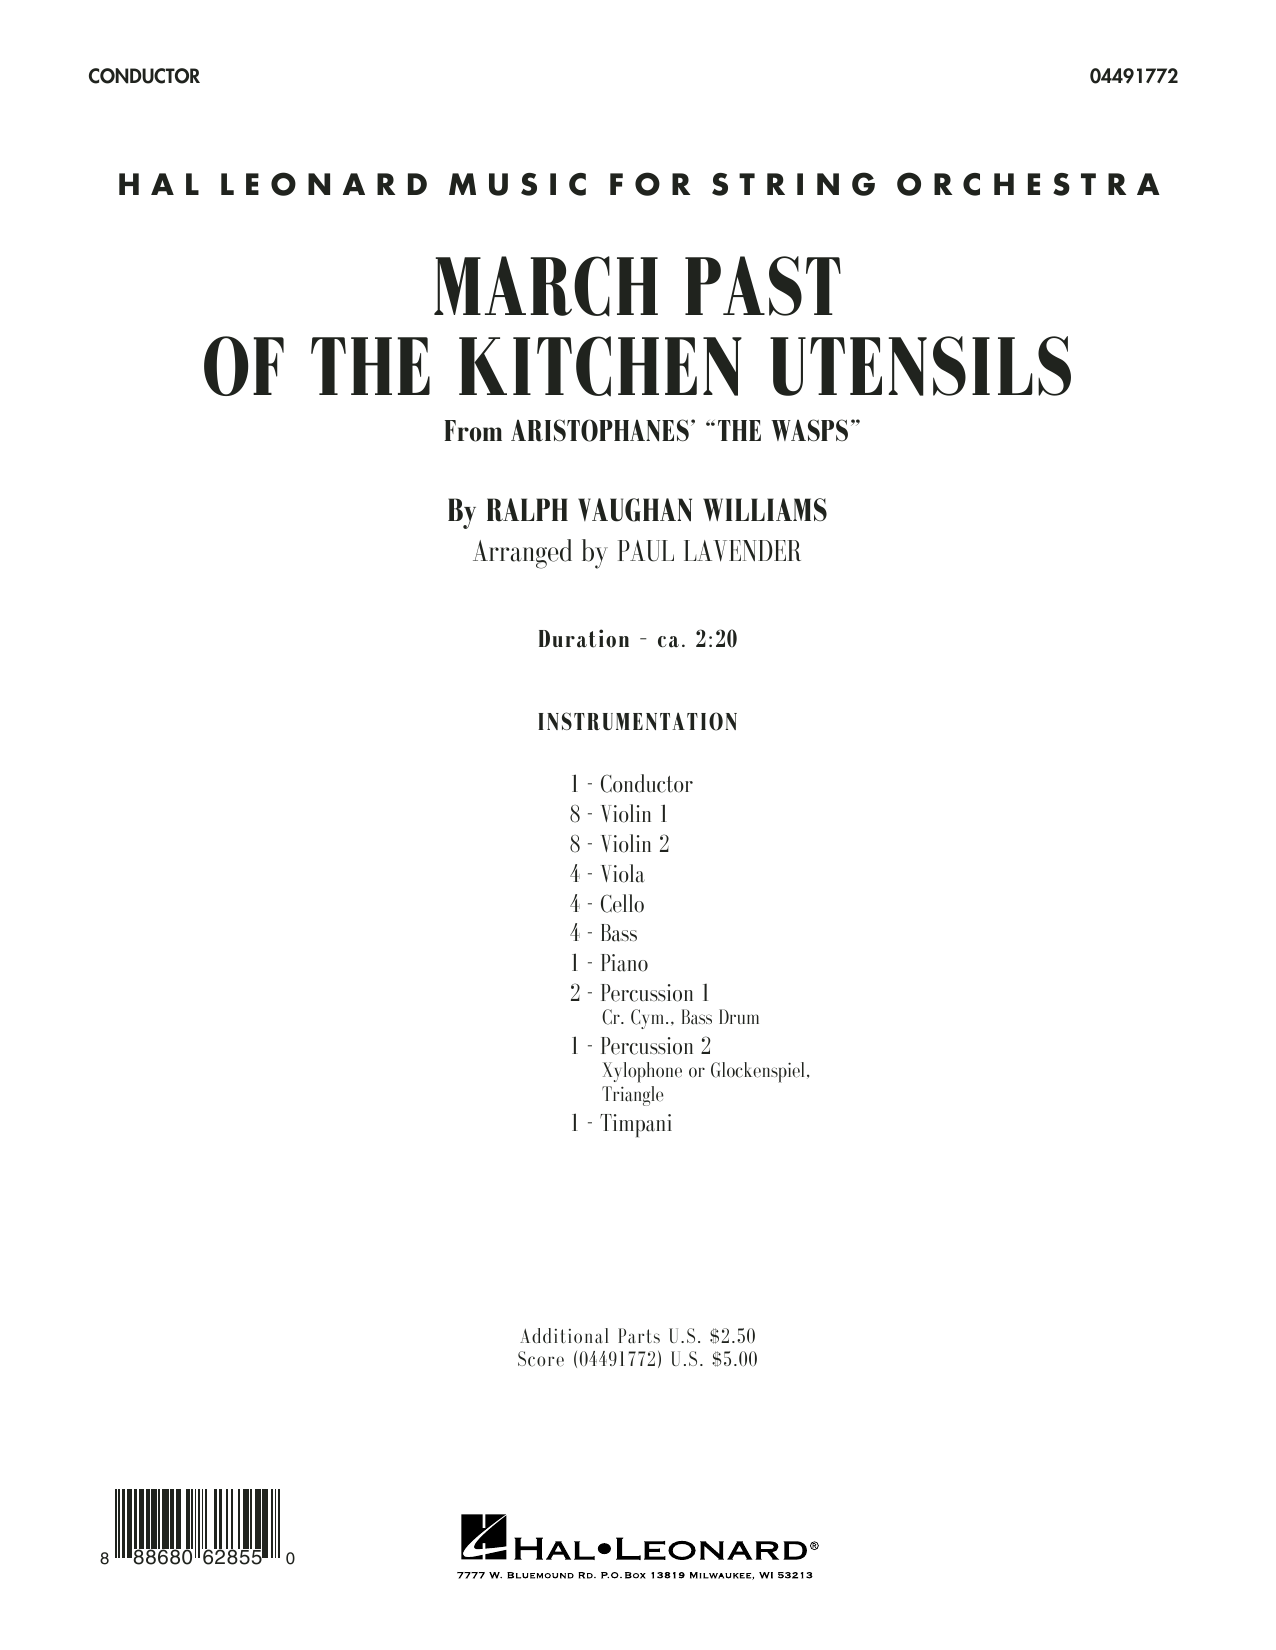 Paul Lavender March Past of the Kitchen Utensils (from The Wasps) - Conductor Score (Full Score) sheet music notes and chords. Download Printable PDF.